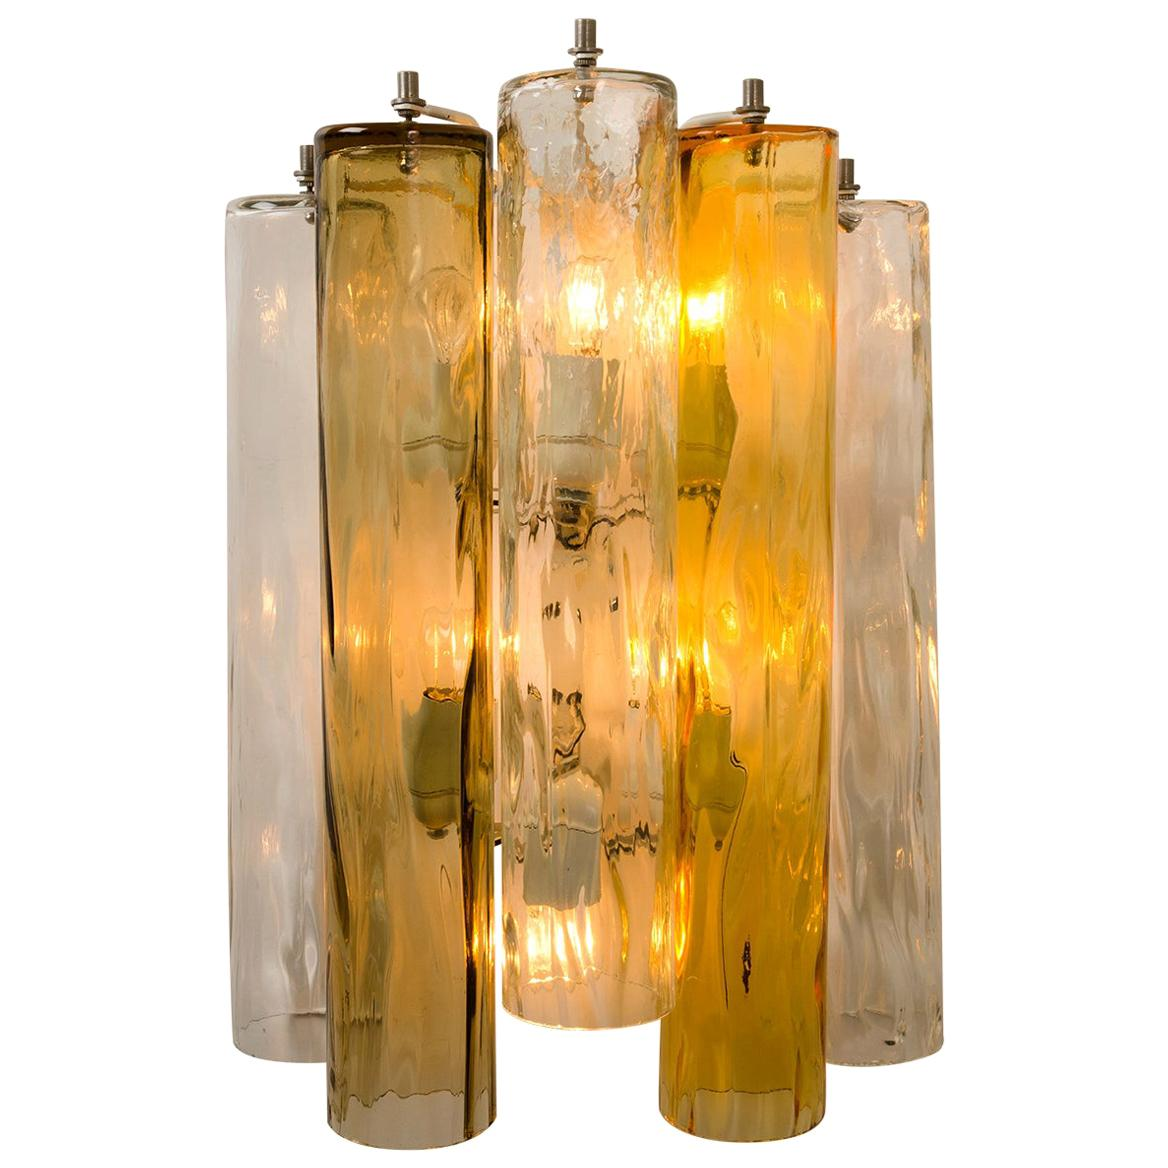 A pair of XL Wall Sconces/Wall Lights Murano Glass, Barovier & Toso